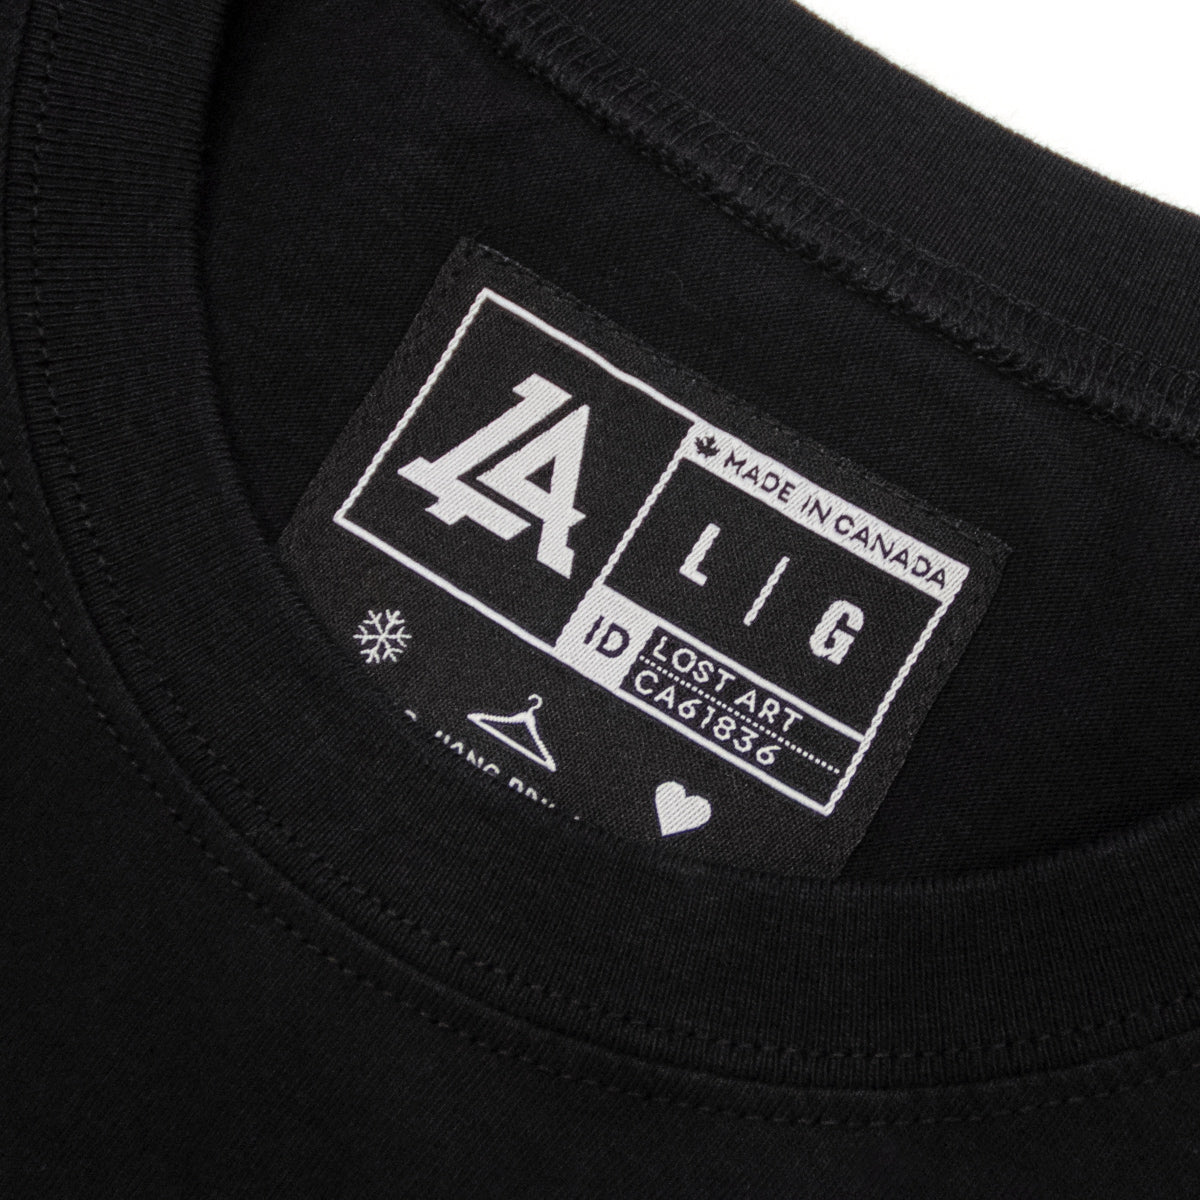 Lost Art Canada - white on black monogram logo tee inside tag view